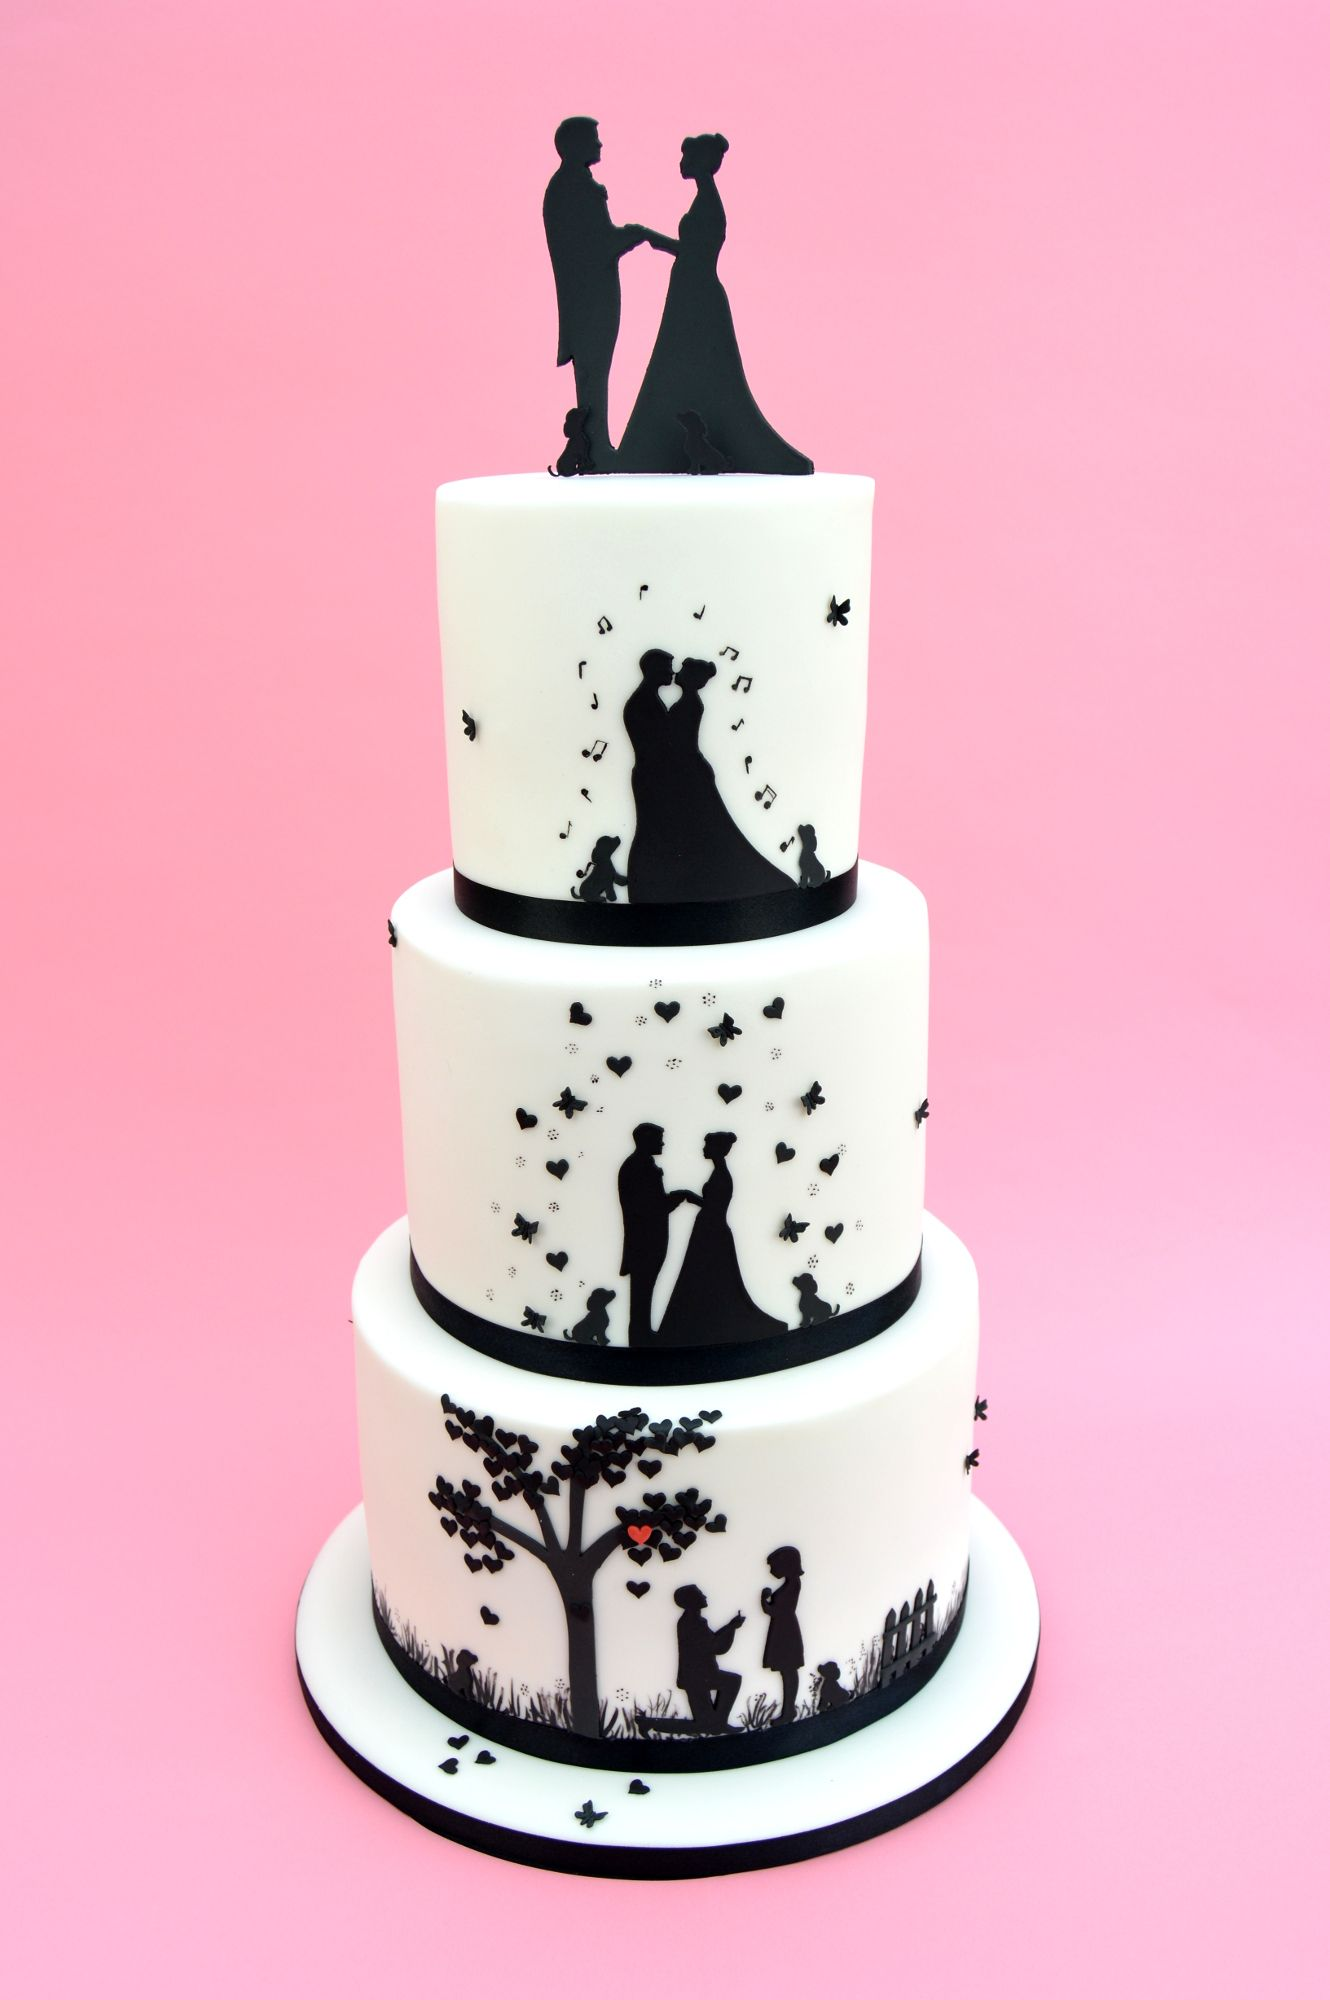 Silhouette Wedding Cake at GetDrawings.com | Free for personal use ...